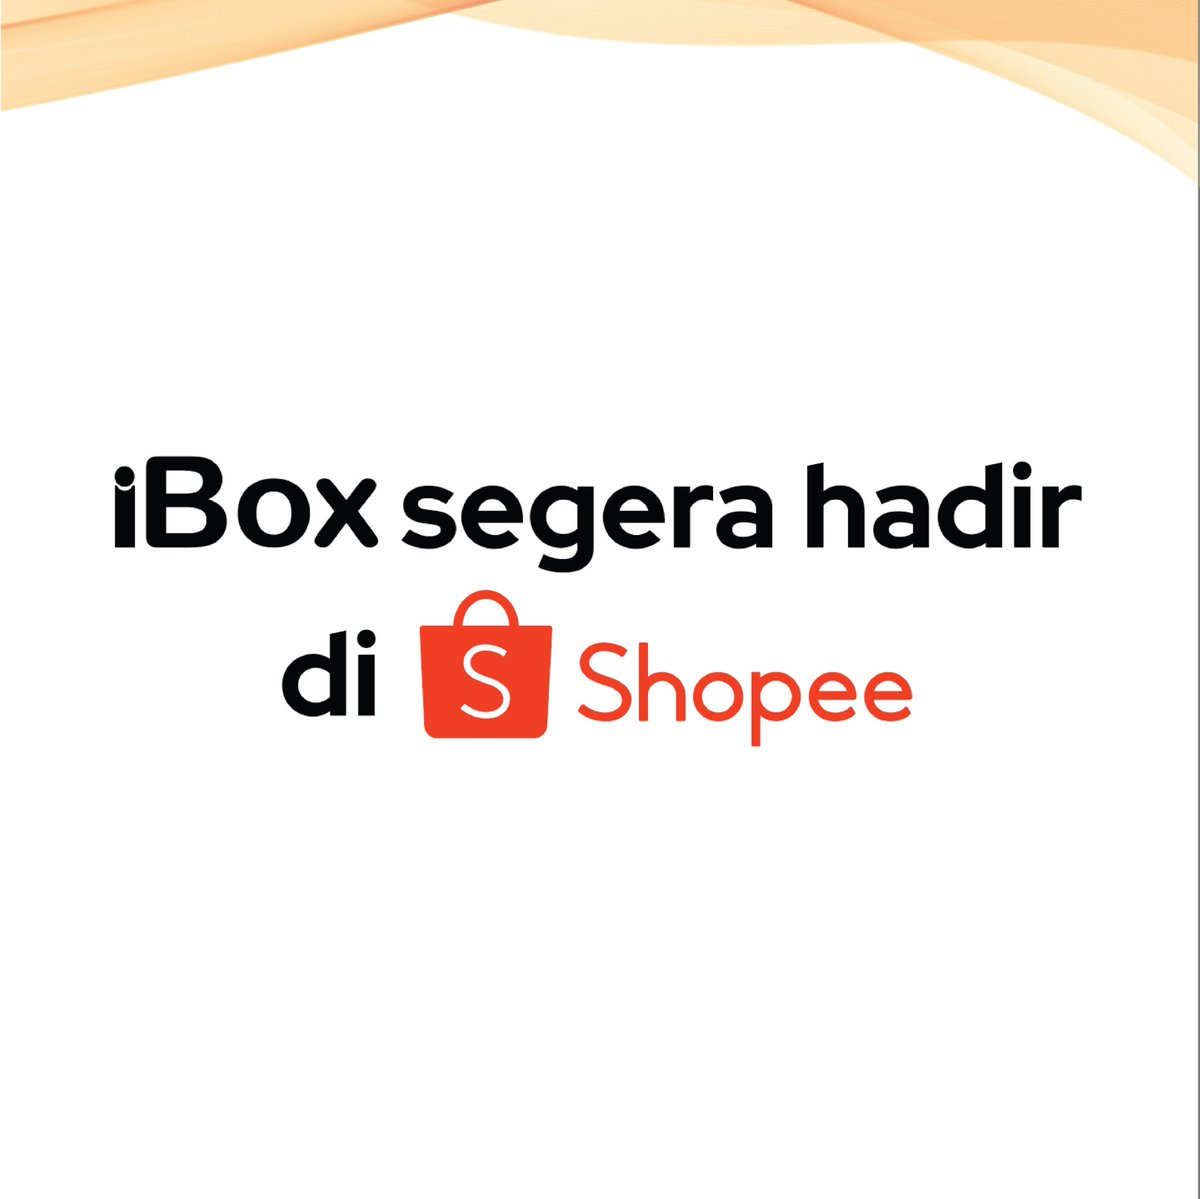 iBox segera hadir di Shopee! Apple Authorized Reseller terbesar di Indonesia segera hadir di Shopee. Nantikan penawaran teristimewa di iBox official Shop. . . #iBoxIndonesia #ShopeeID https://t.co/btvjkVFvG0